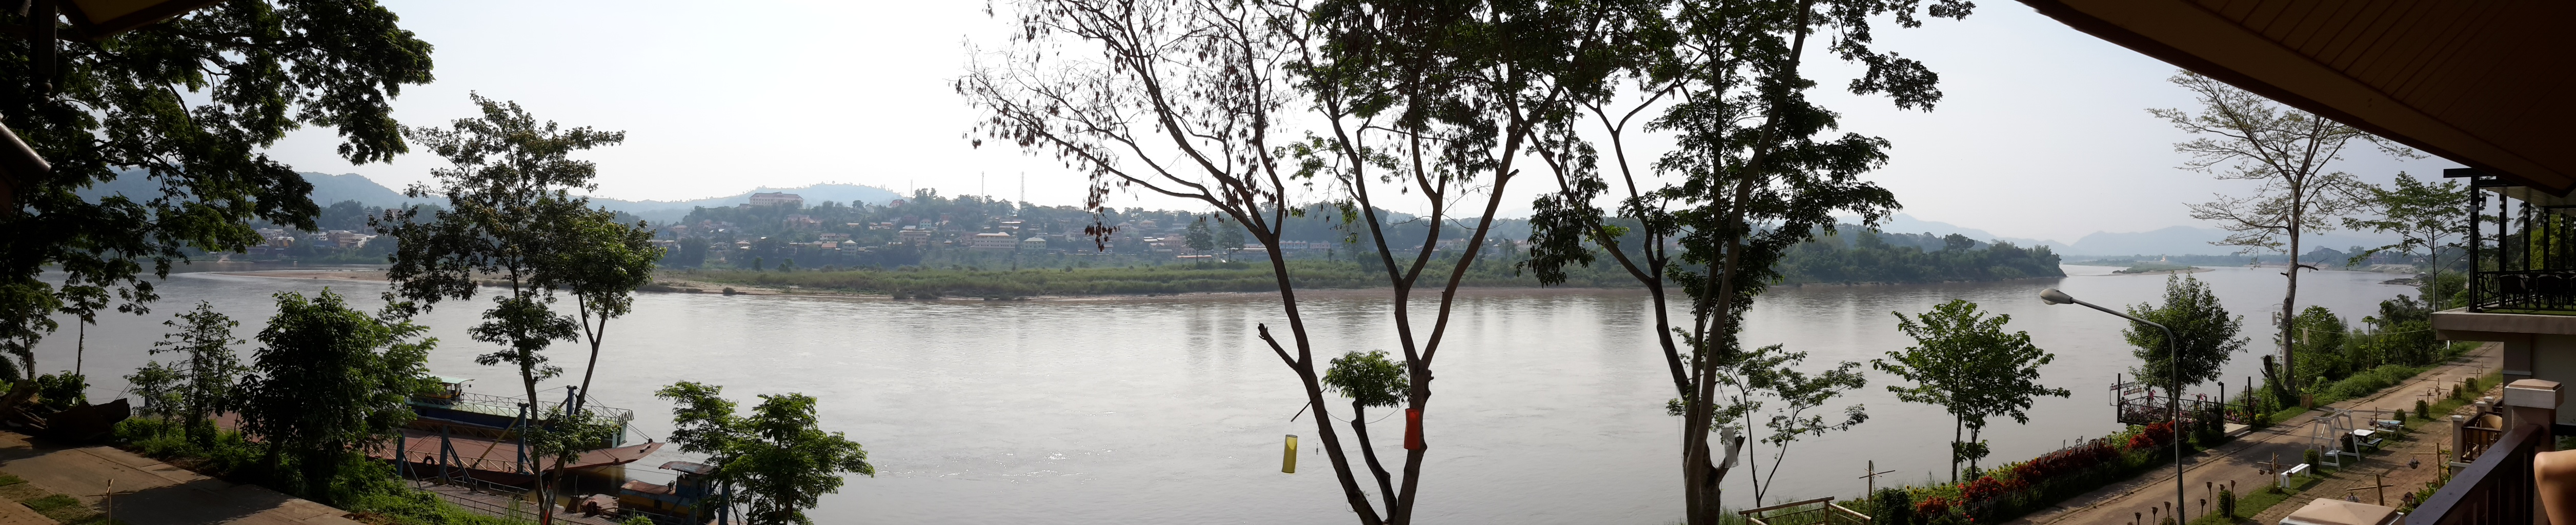 Panoramic of Mekong River from Chiang Khong Side